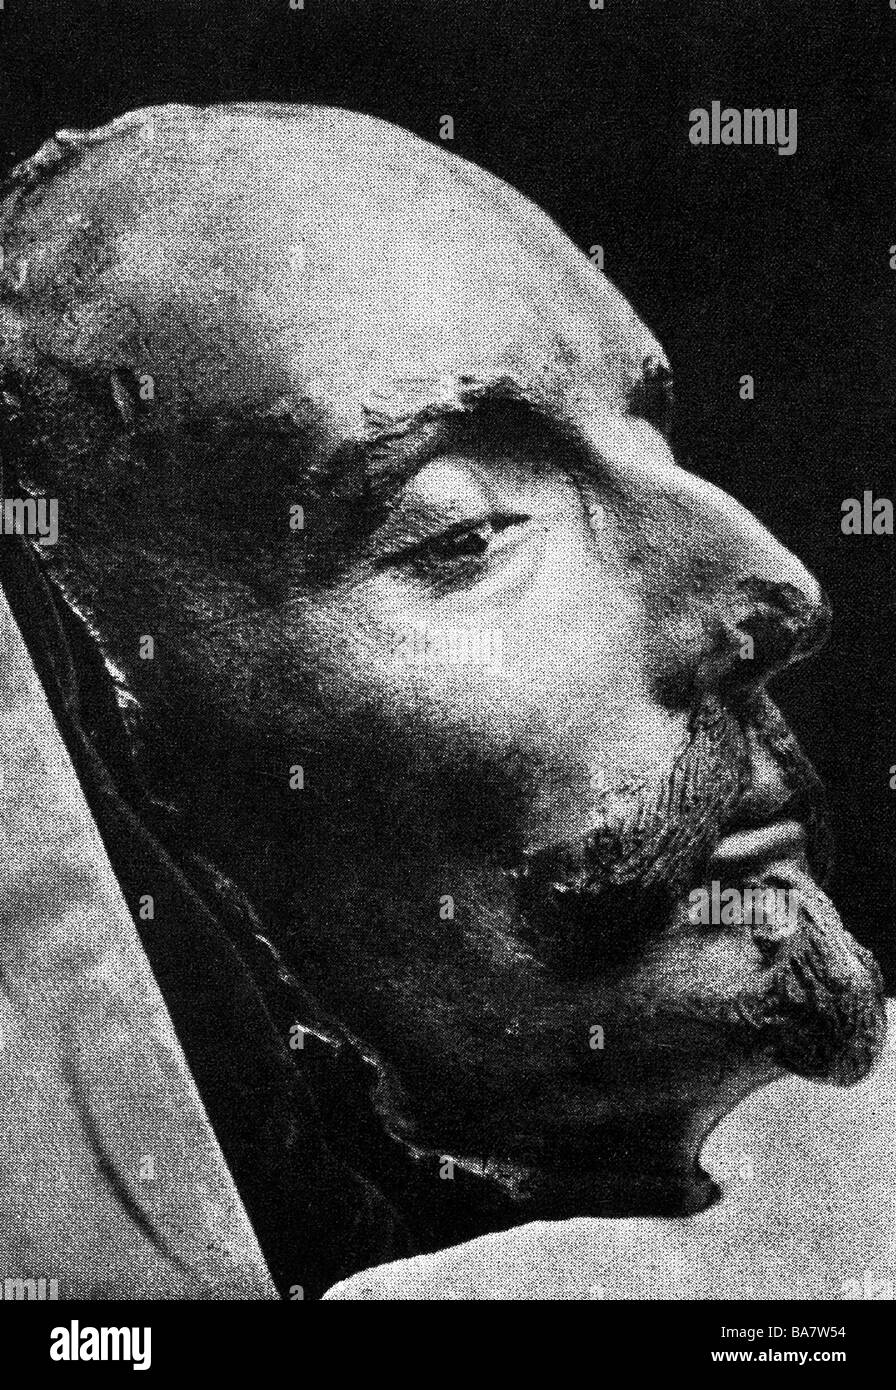 Shakespeare, William, 23.4.1564 - 23.4.1616, English poet, his death mask, Additional-Rights-Clearances-NA - Stock Image